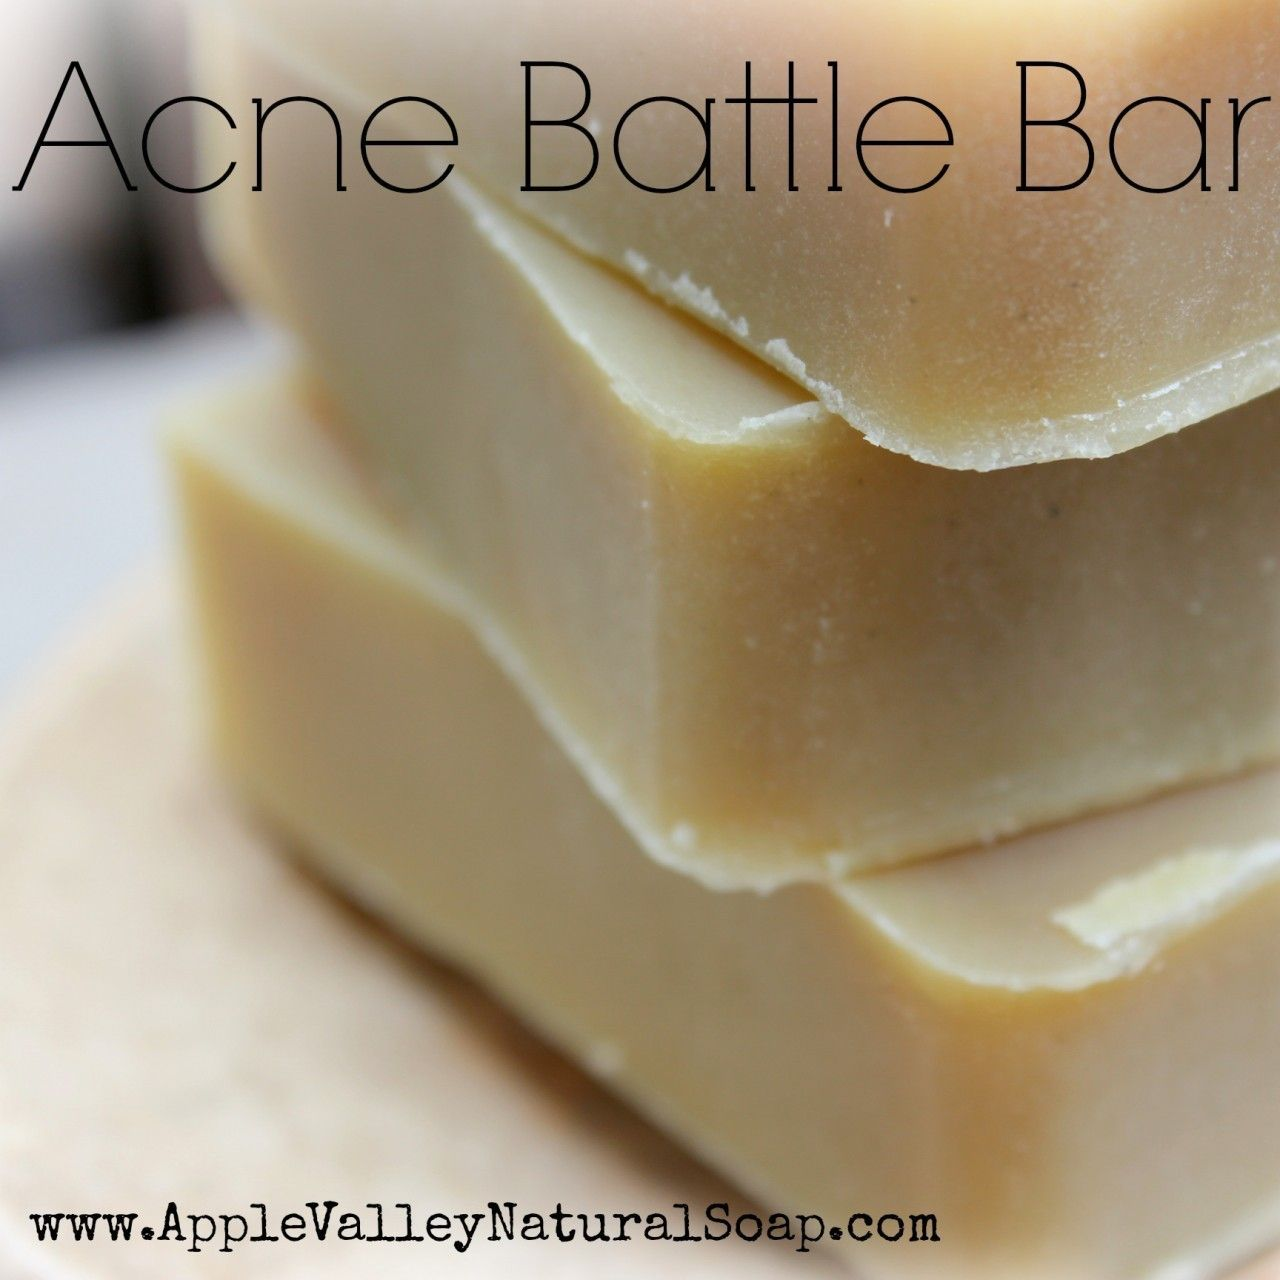 Acne Battle Face and Body Bar Homemade soap recipes